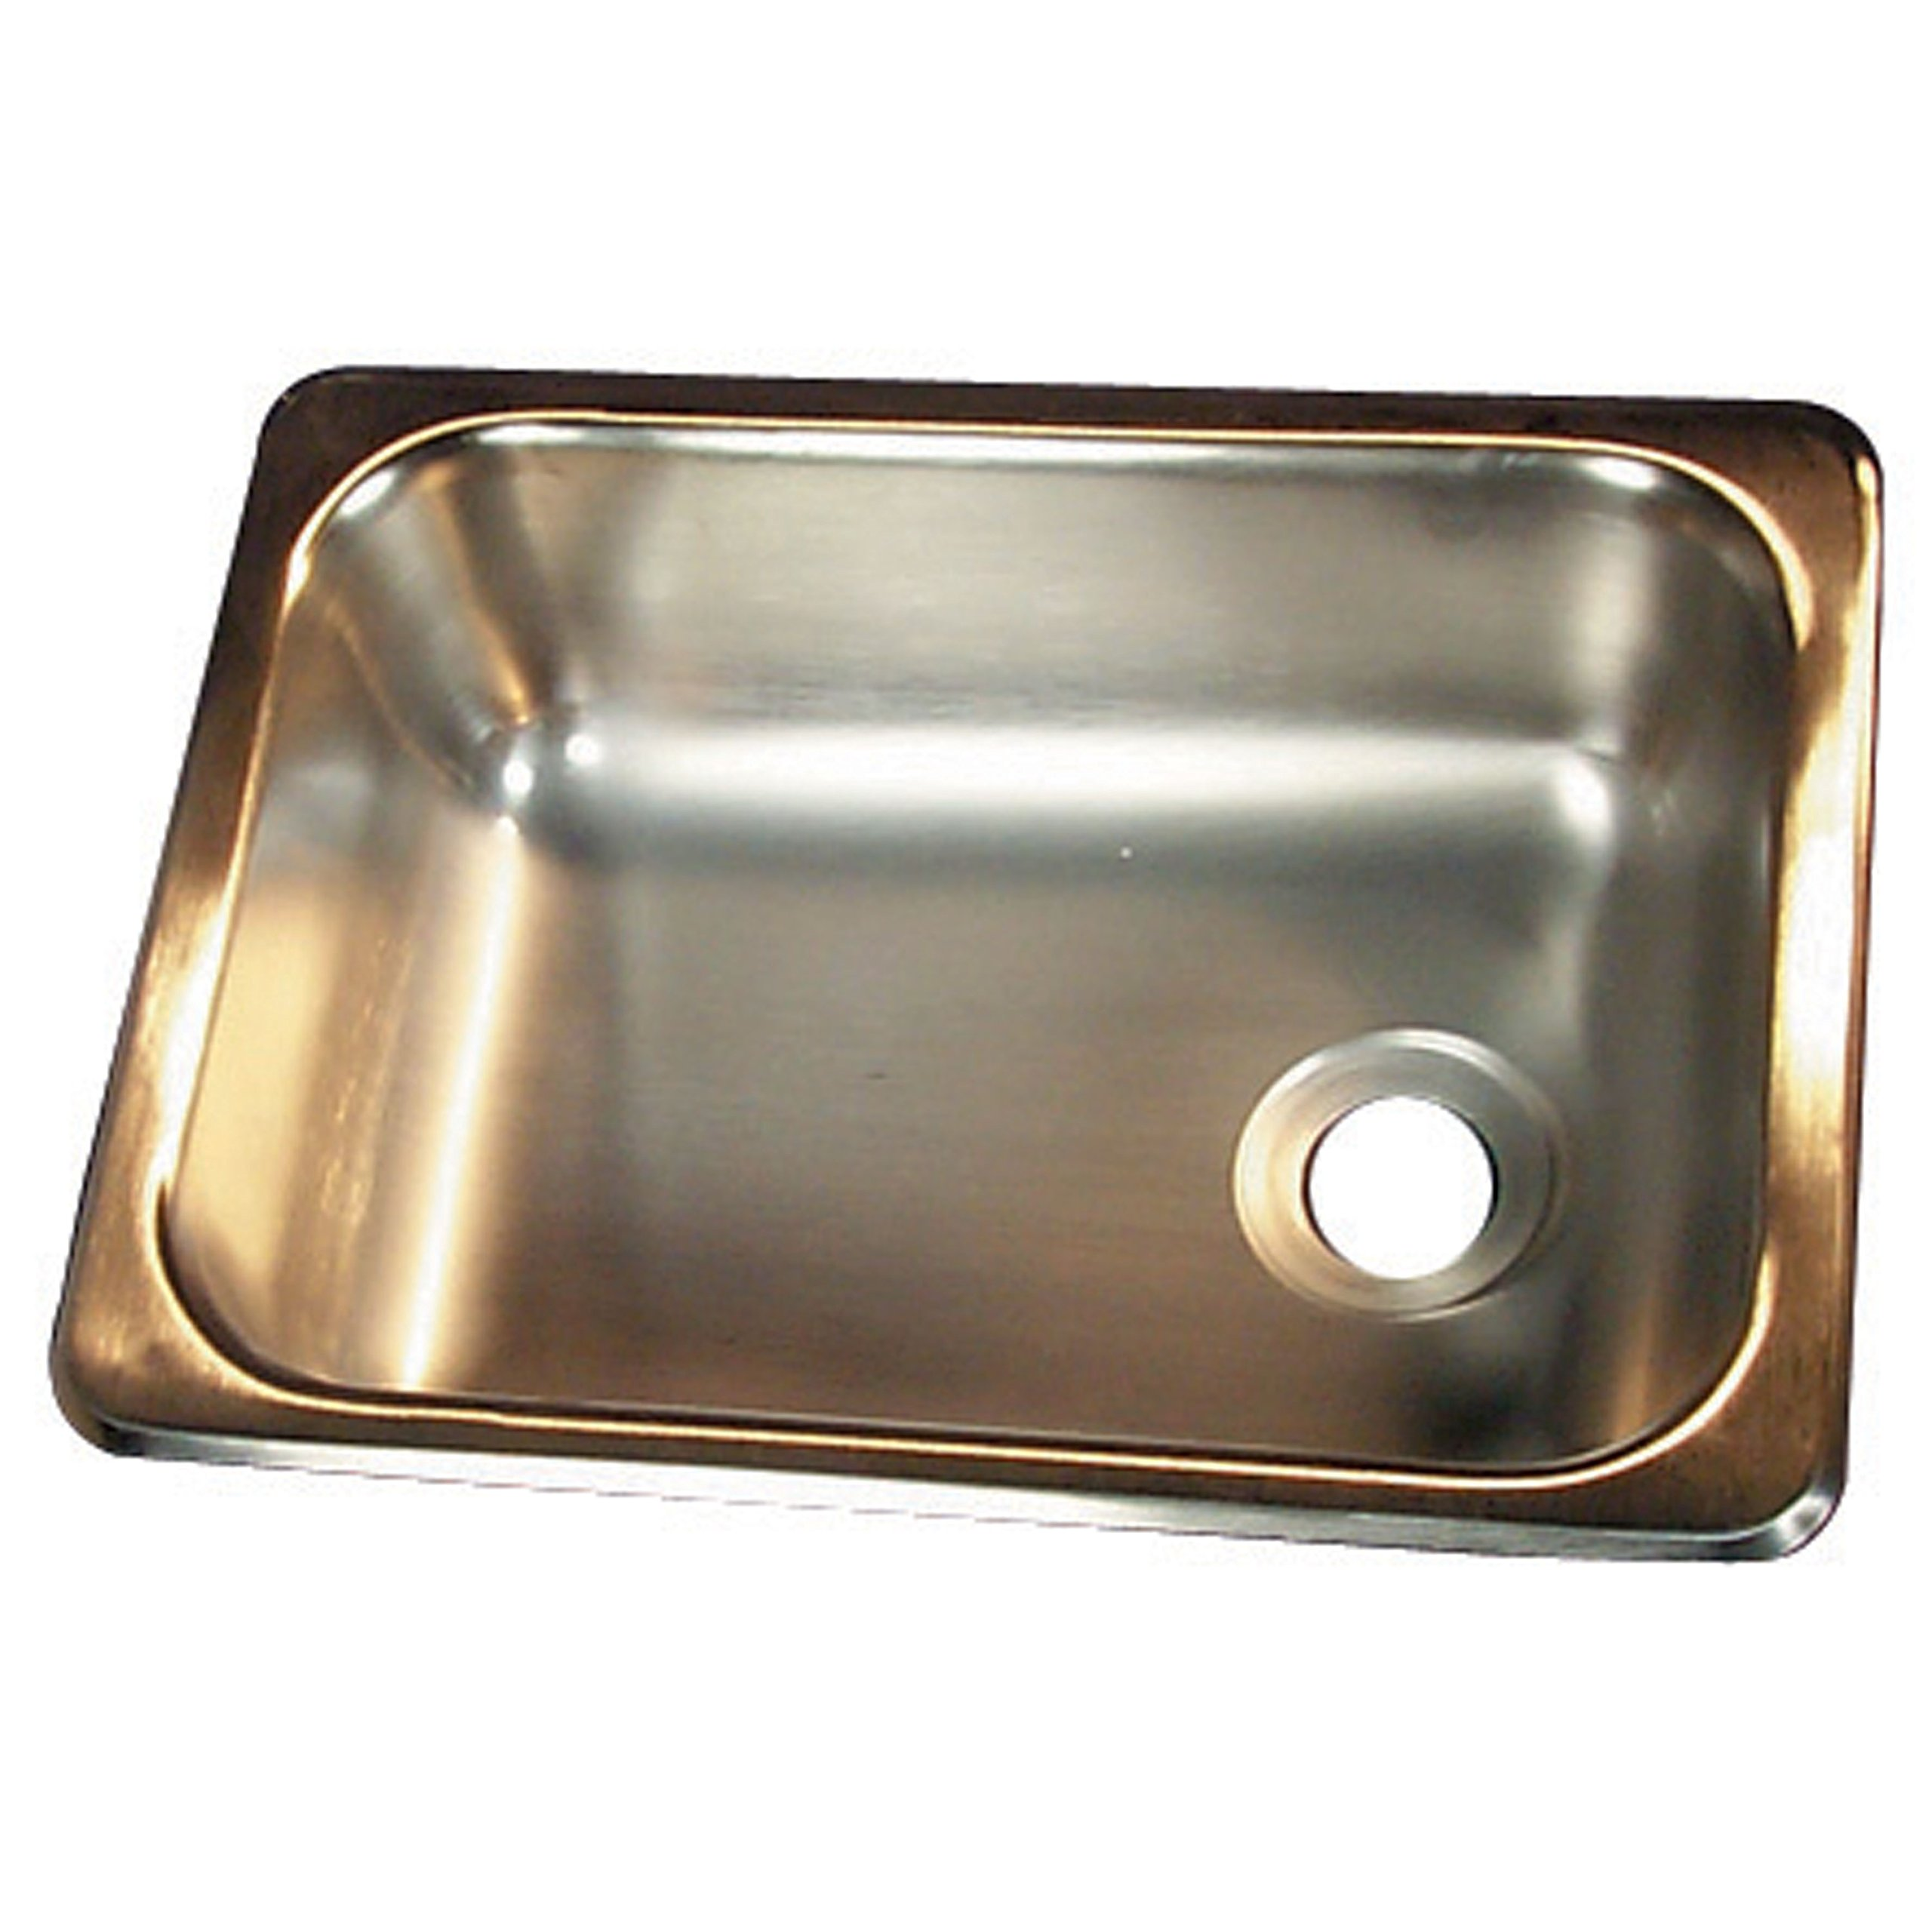 Heng's SSS-1315-5-22 Stainless Steel Single Sink by Heng's